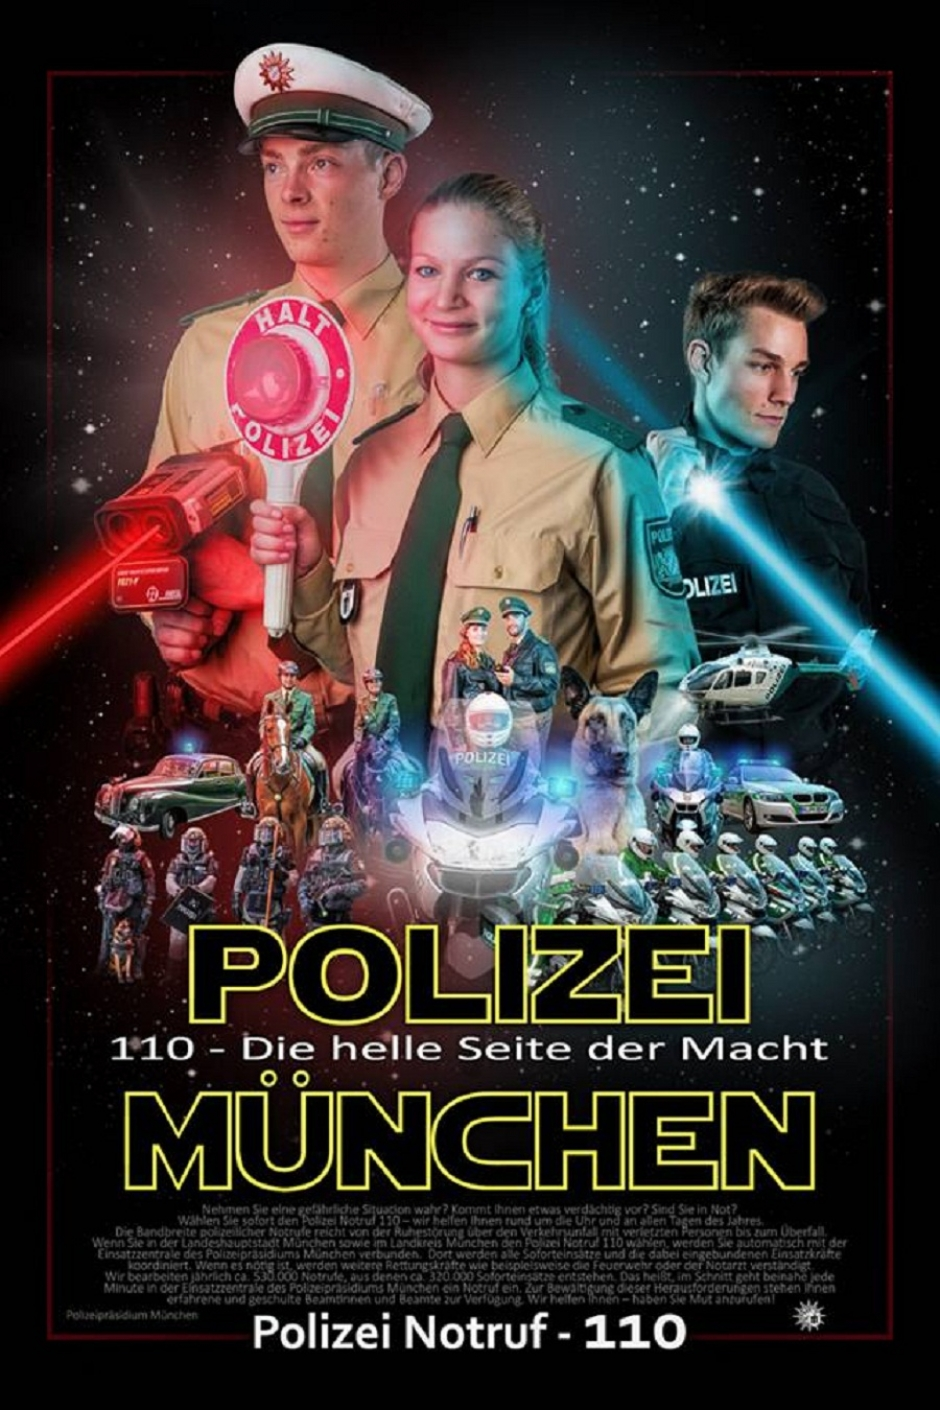 Munich Police with Star Wars Poster and Yoda-Speak